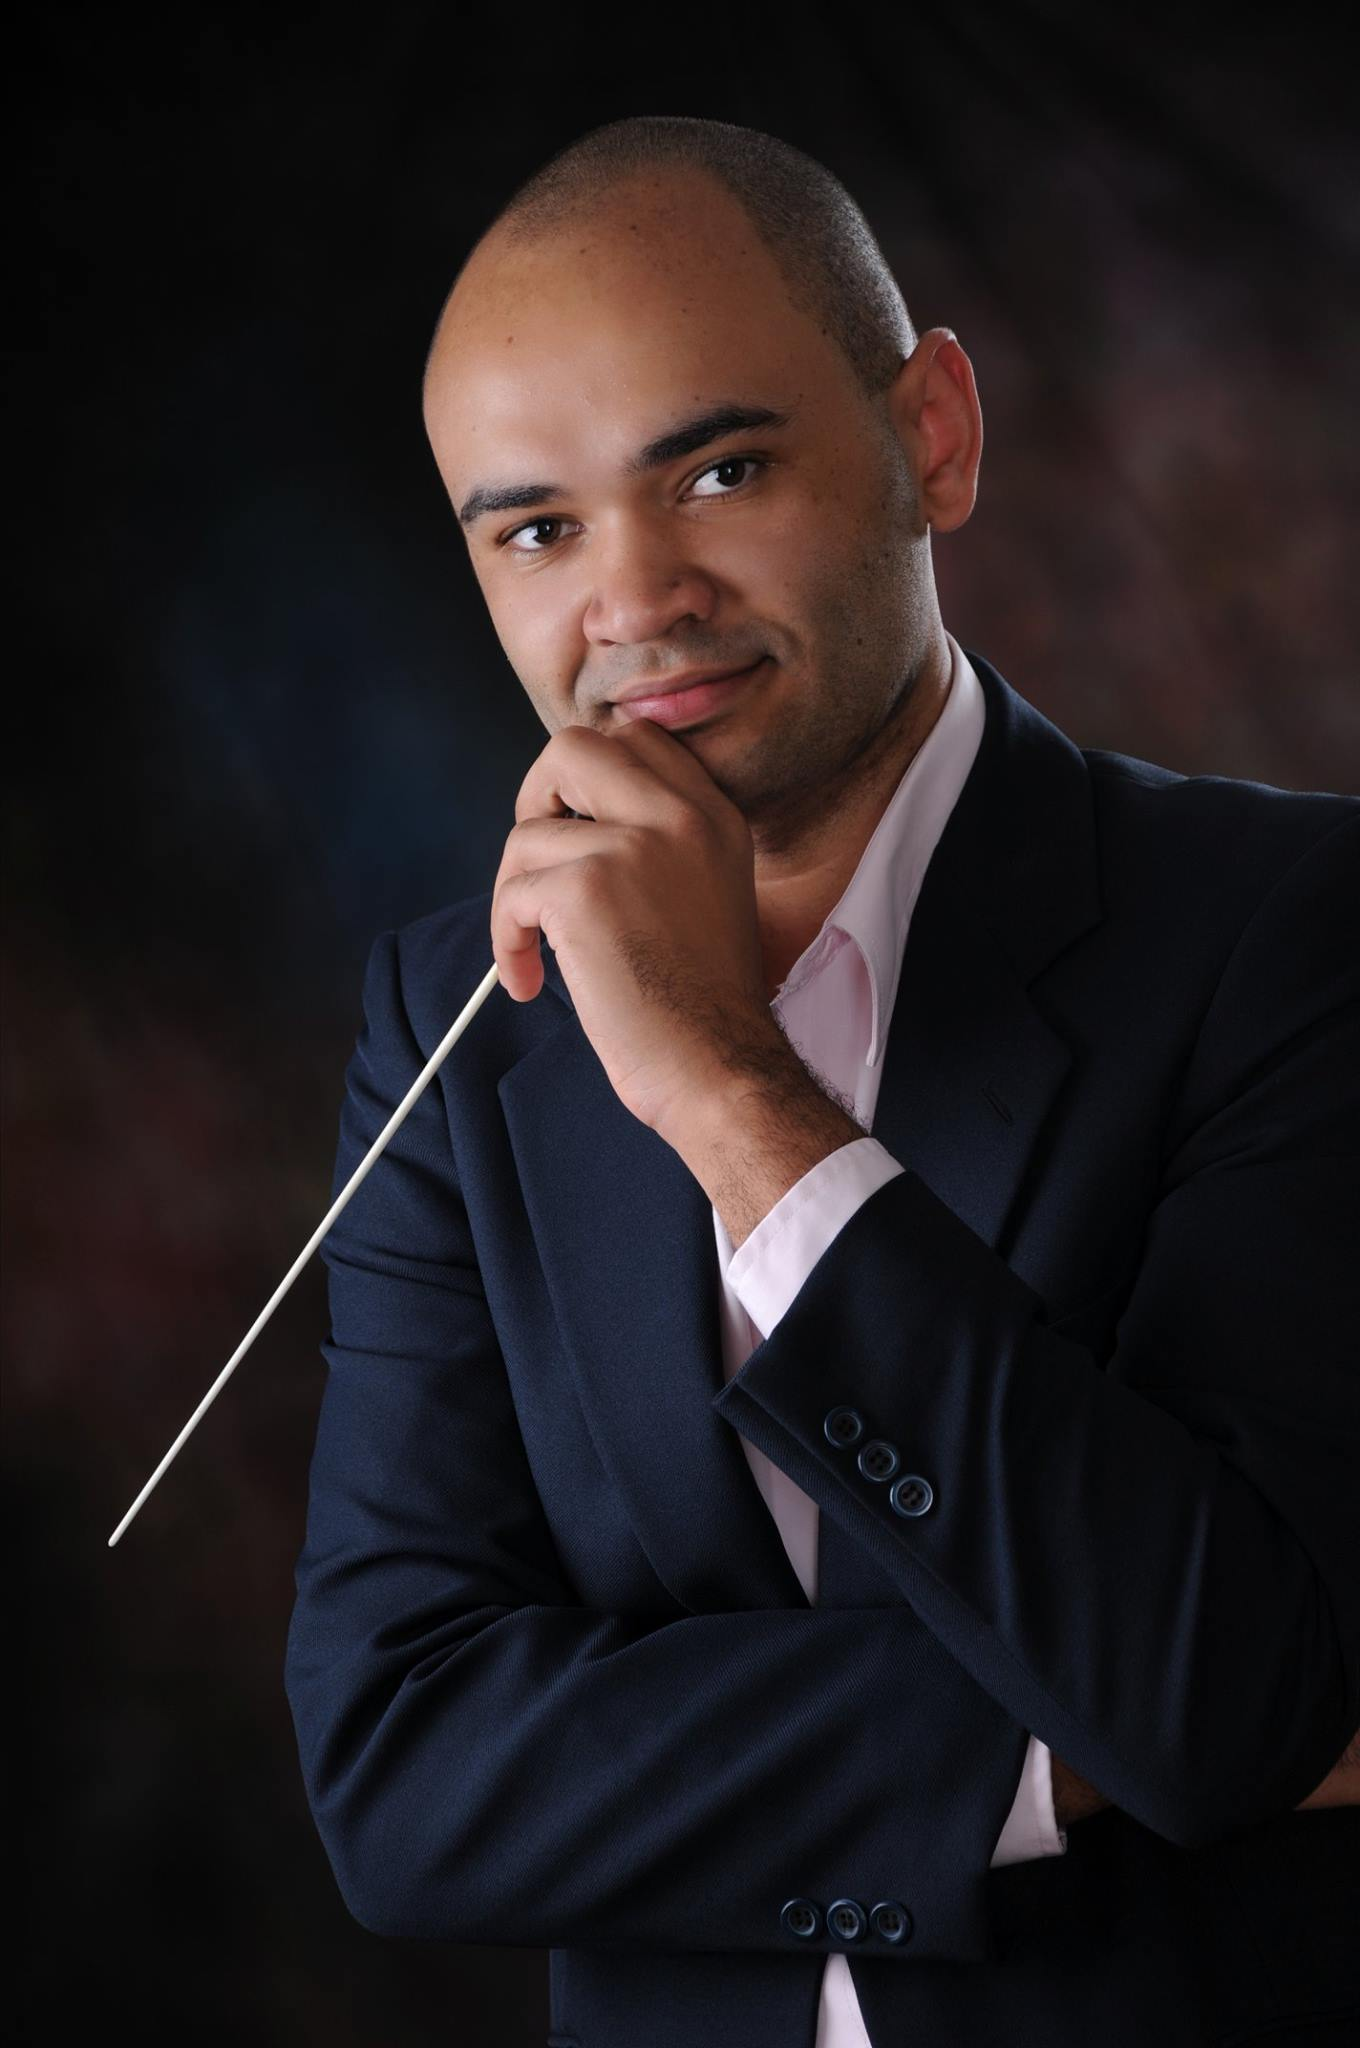 Stephan Fillare - Violin - Stephan Fillare made his New York City debut conducting the world premiere of Bruce Saylor's Adagio for Orchestra . Under the guidance of Maurice Peress, Mr. Fillare worked as an Assistant Conductor for Bernstein's MASS. Last Winter Mr. Fillare could be seen as Music Director for New Camerata Opera's Double Bill Production of Gustav Holst's Sāvitri and John Blow's Venus & Adonis. Other engagements include Conductor for the Marriage of Figaro with Manhattan Opera studio, Guest Conductor with Golden Rose Opera, and his Staten Island debut conducting a concert of arias and ensembles with Belle Nuit. This season he continues as Assistant Conductor of the New York Repertory Orchestra and where he will conduct Haydn's Symphony No.19. He has also been invited back to Manhattan Opera Studio to conduct a production of Mozart's Die Zauberflöte.Mr. Fillare keeps an active career in New York City as a violinist. He was appointed Concertmaster of the Livingston Symphony in New Jersey in January 2019. He can also be seen as concertmaster with the New Amsterdam Opera Company, New York Repertory Orchestra and Manhattan Opera studio. Last November, he was Concertmaster as well as Assistant Conductor for New York Concert Opera's inaugural performance of Puccini's La Boheme.Stephan studied conducting with Anthony Hose and violin with Routa Kroumovitch-Gomez while he was attending Stetson University in Deland, Florida. He received his Bachelor of Music in Violin Performance from Stetson University in 2012. He began studying with Maurice Peress in New York City in 2012, and received his Master of Arts in Instrumental Conducting from the Aaron Copland School of Music in 2014.